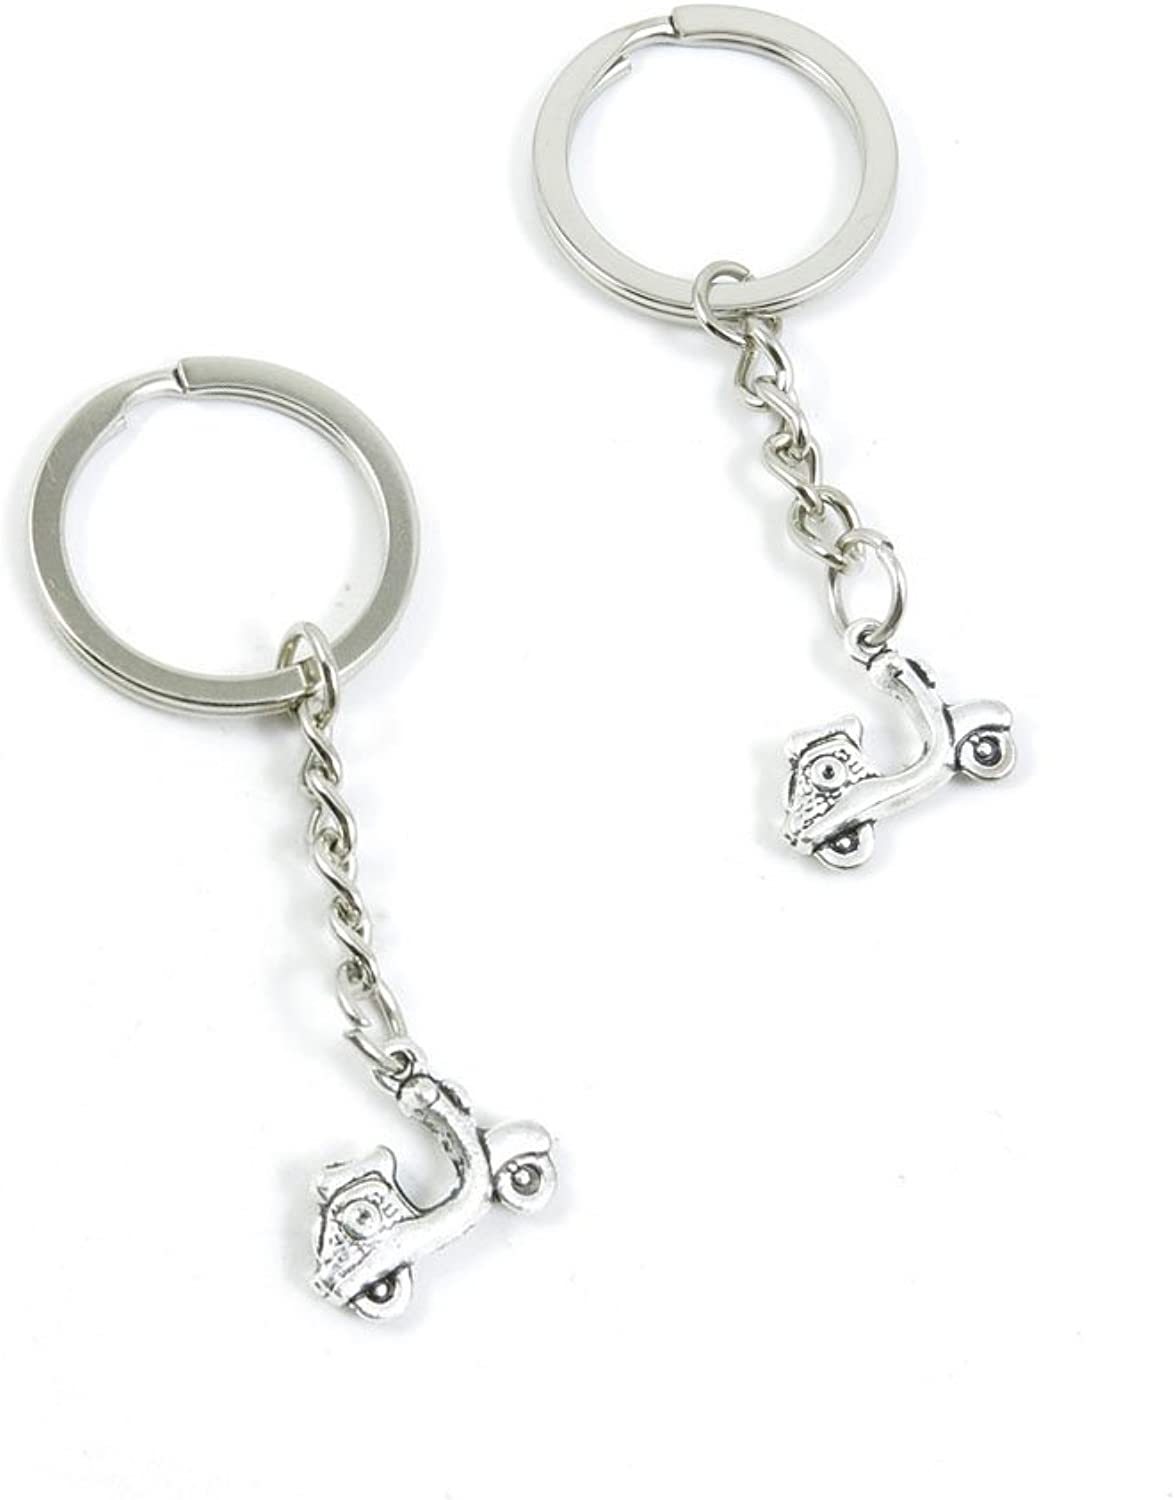 100 Pieces Keychain Keyring Door Car Key Chain Ring Tag Charms Bulk Supply Jewelry Making Clasp Findings C3NT1O Ladies Motorcycle Scooter